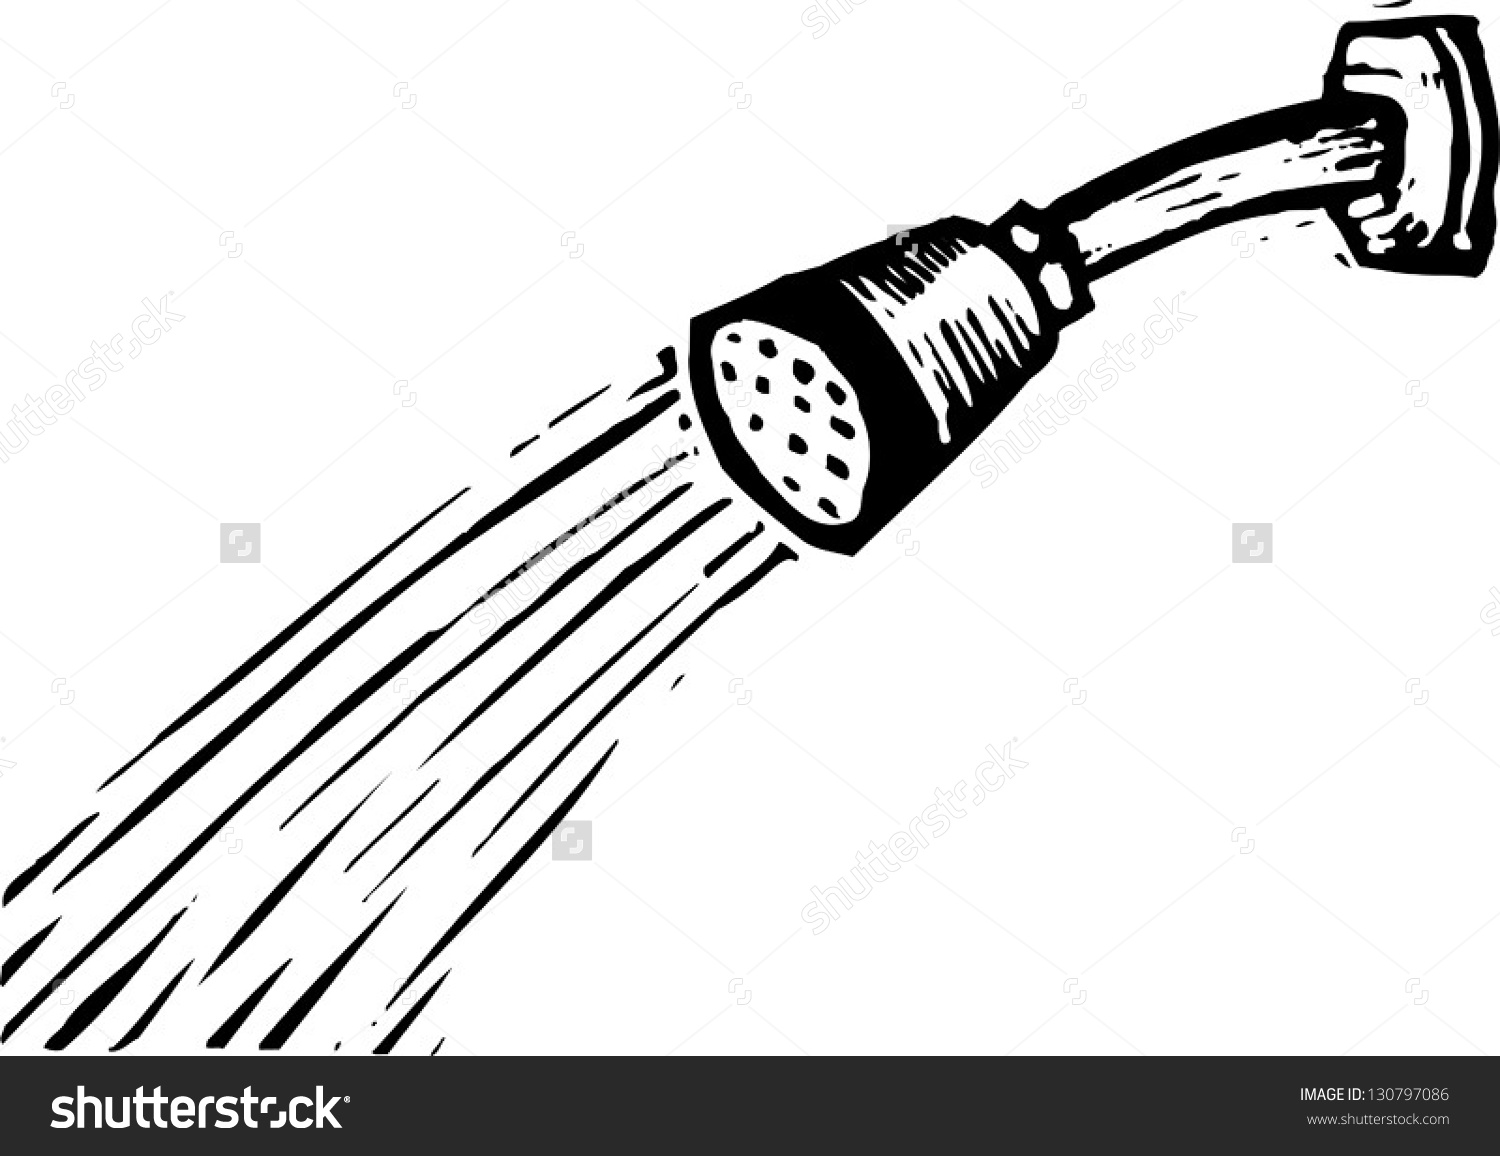 1500x1156 Shower Head Clipart Black And White Amp Shower Head Clip Art Black